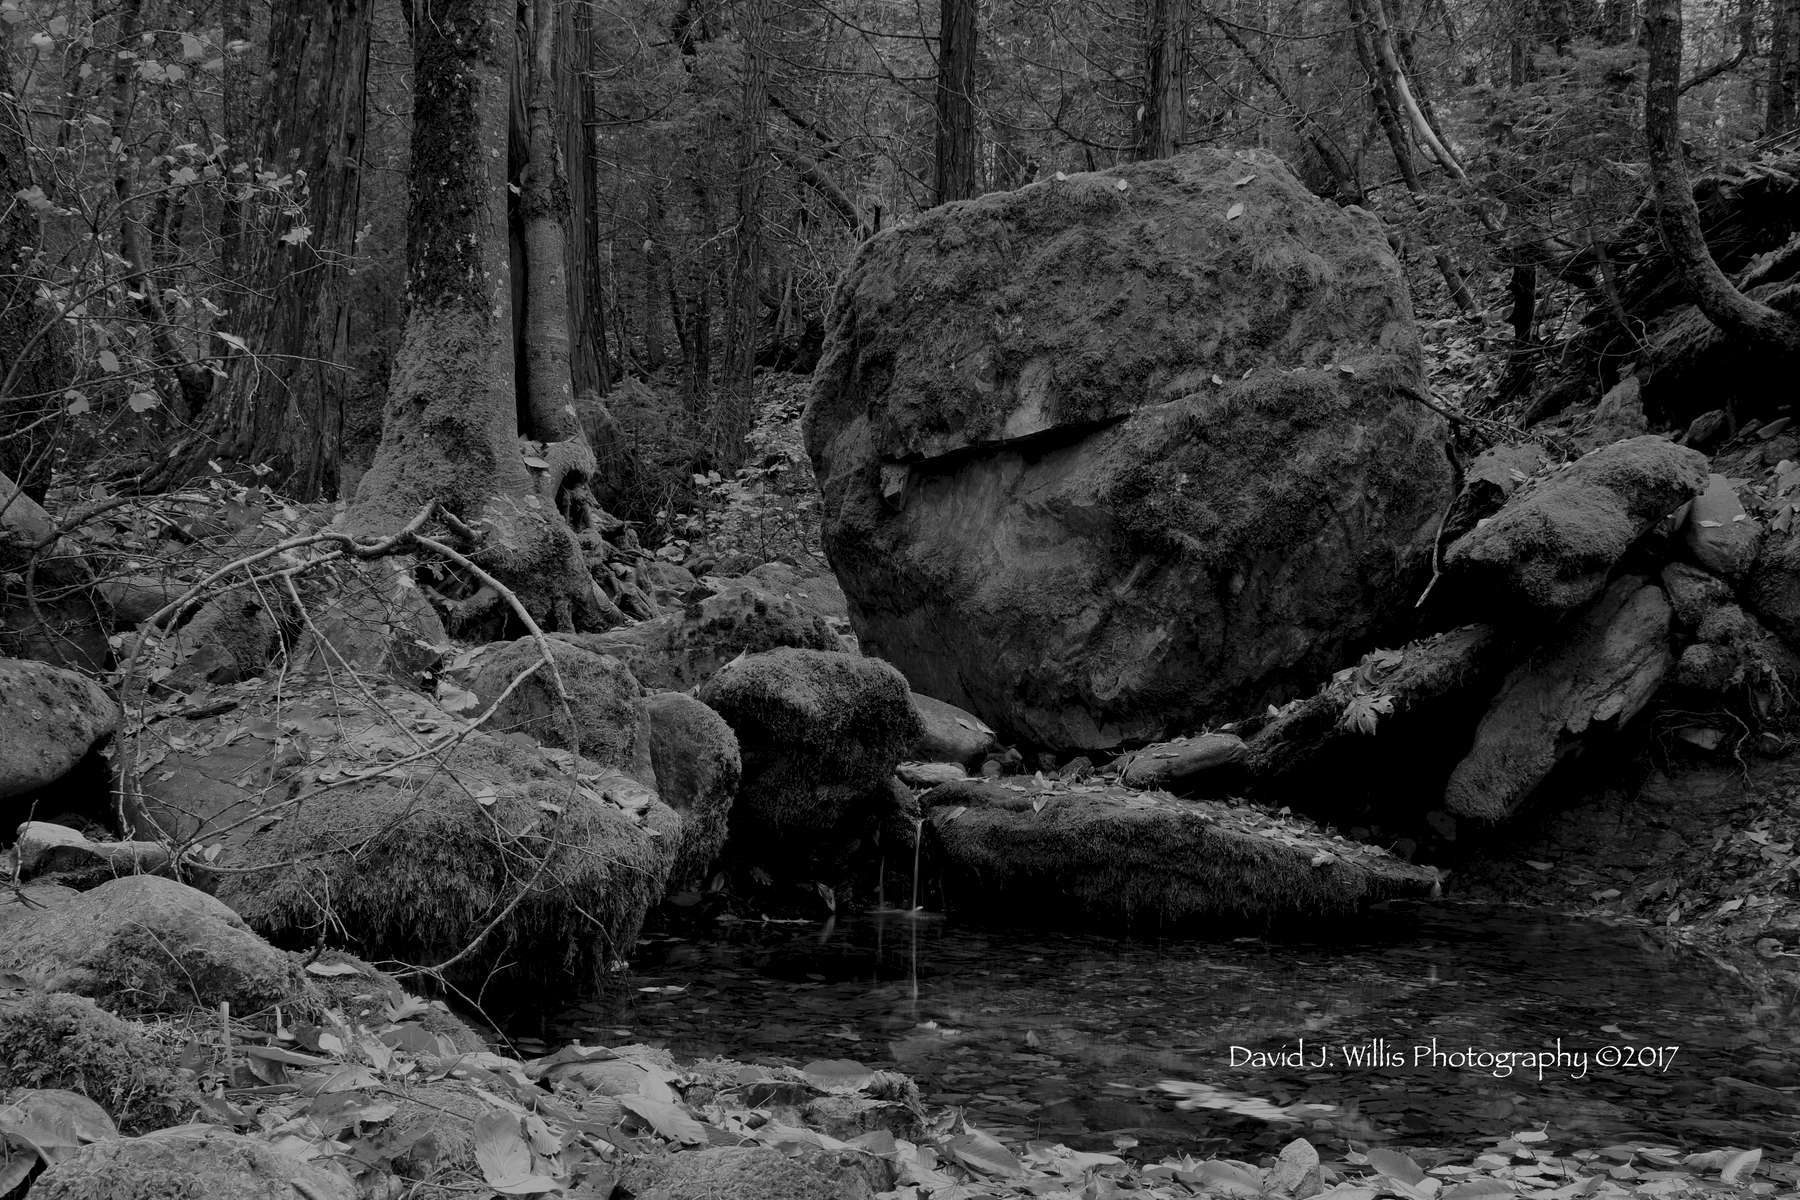 Dream Catcher, Big Boulder, Undisclosed Location, Fall, Plumas County